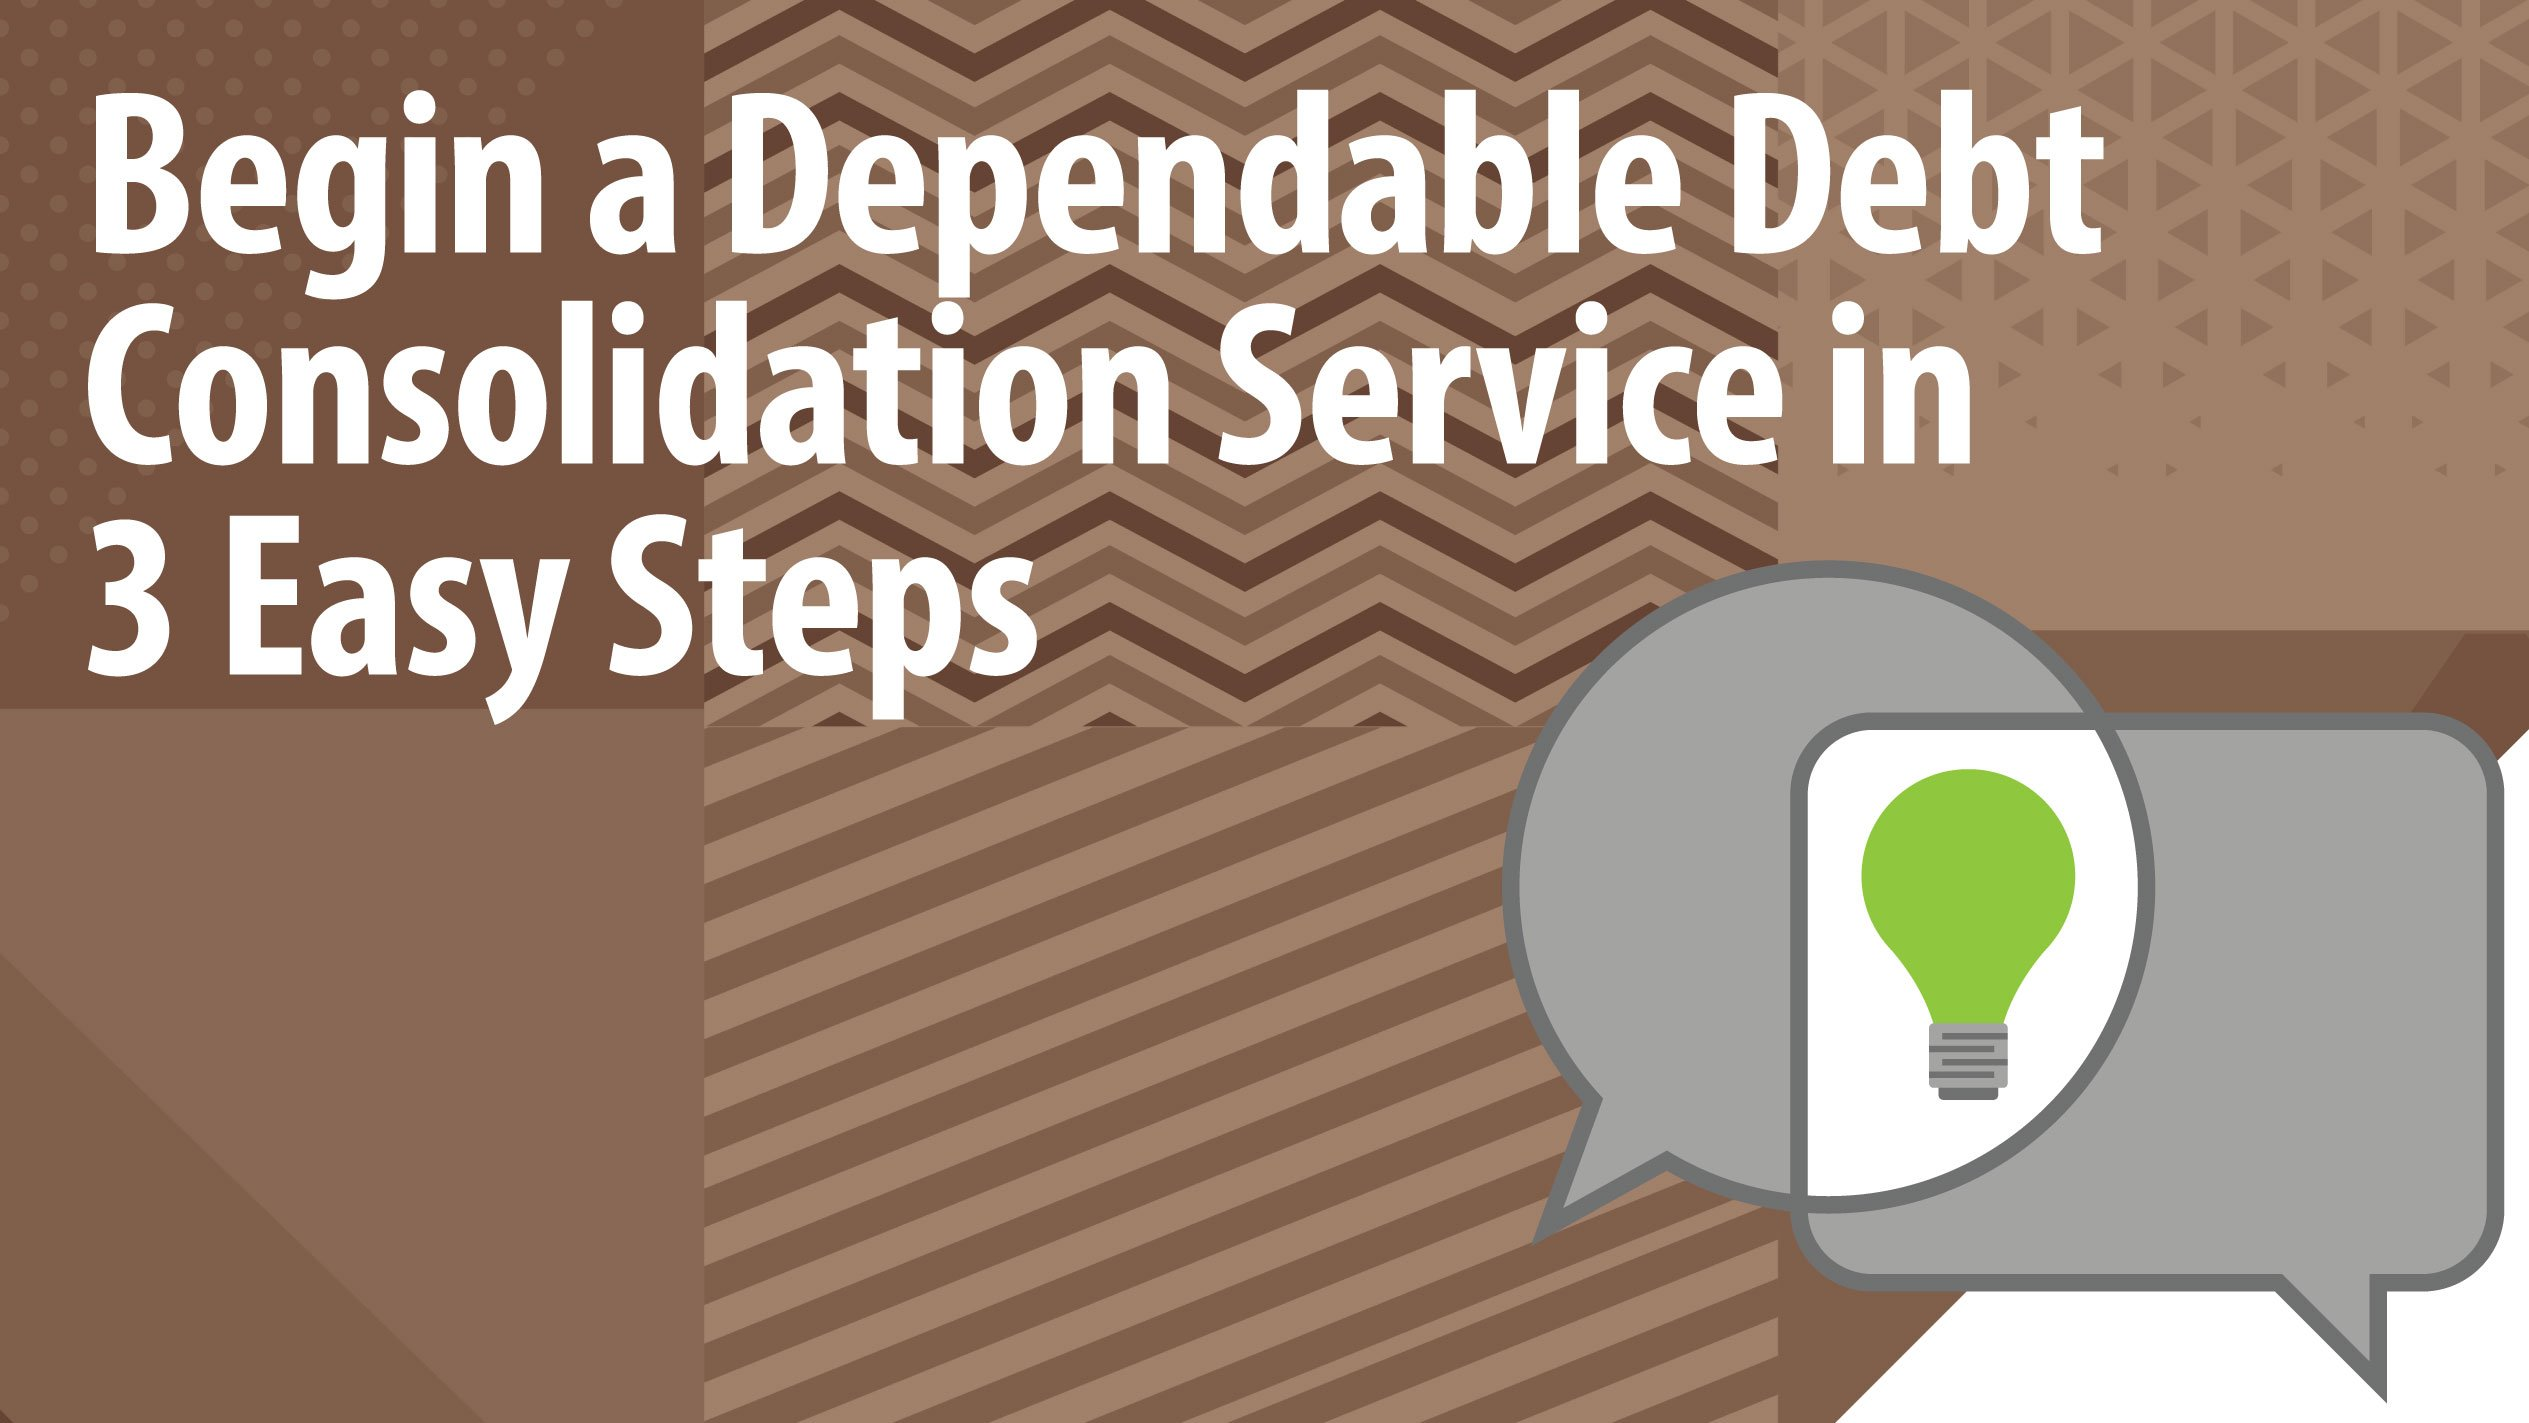 Begin a Dependable Debt Consolidation Service in 3 Easy Steps